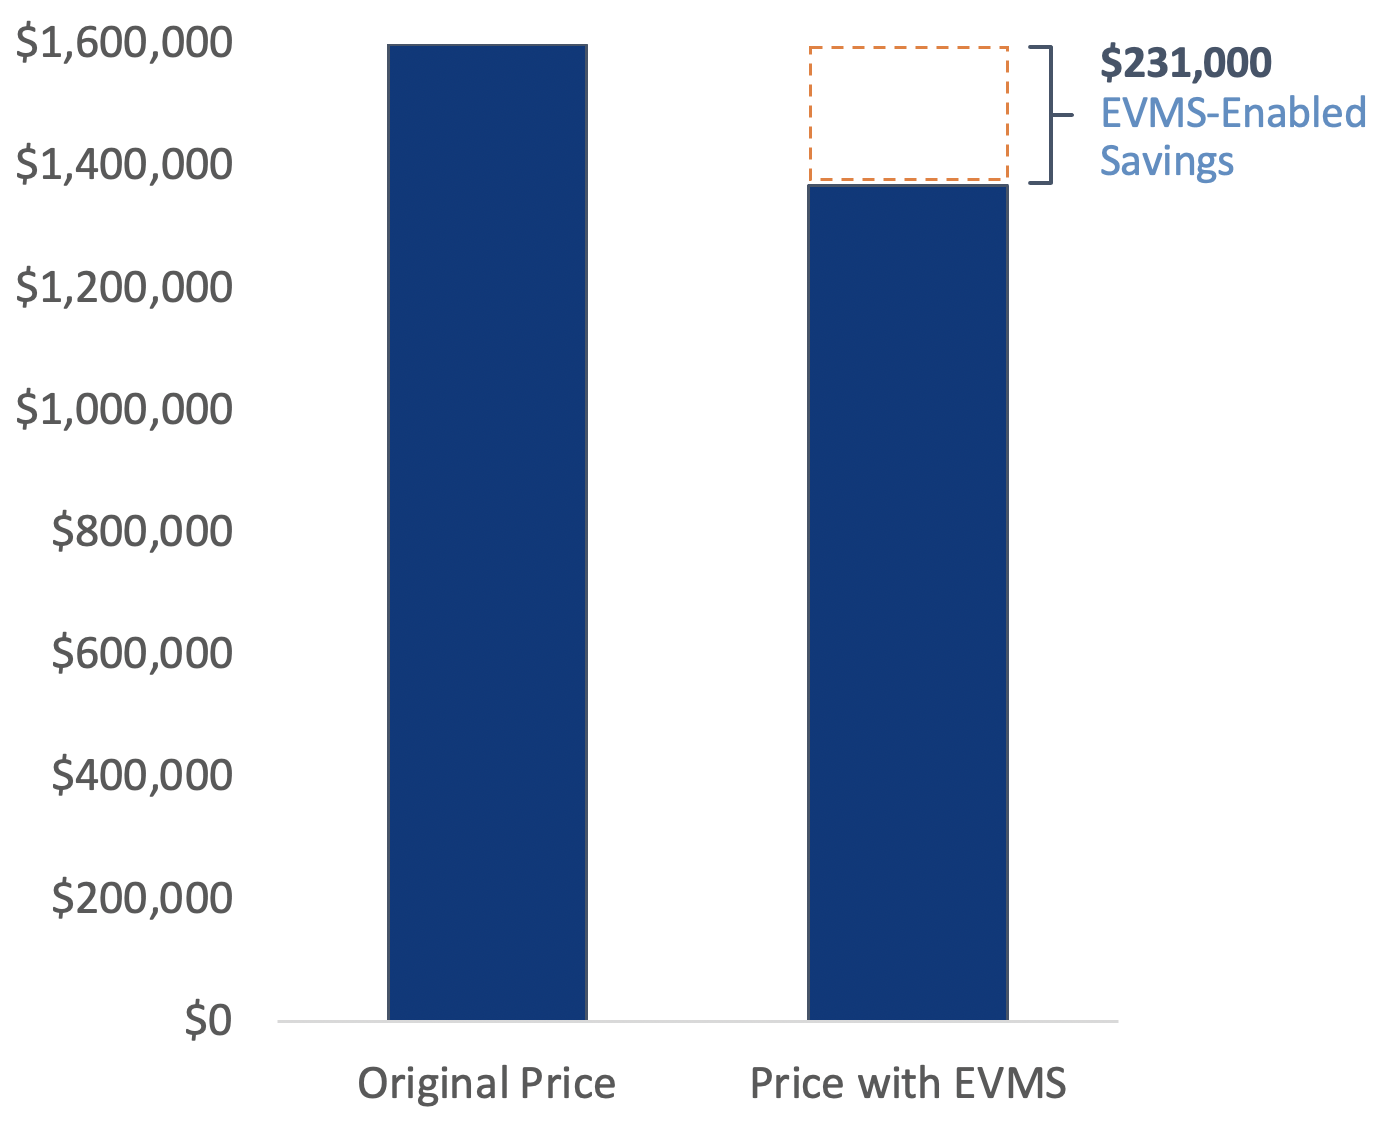 Case Study Chart $231,000 EVMS Enabled Savings